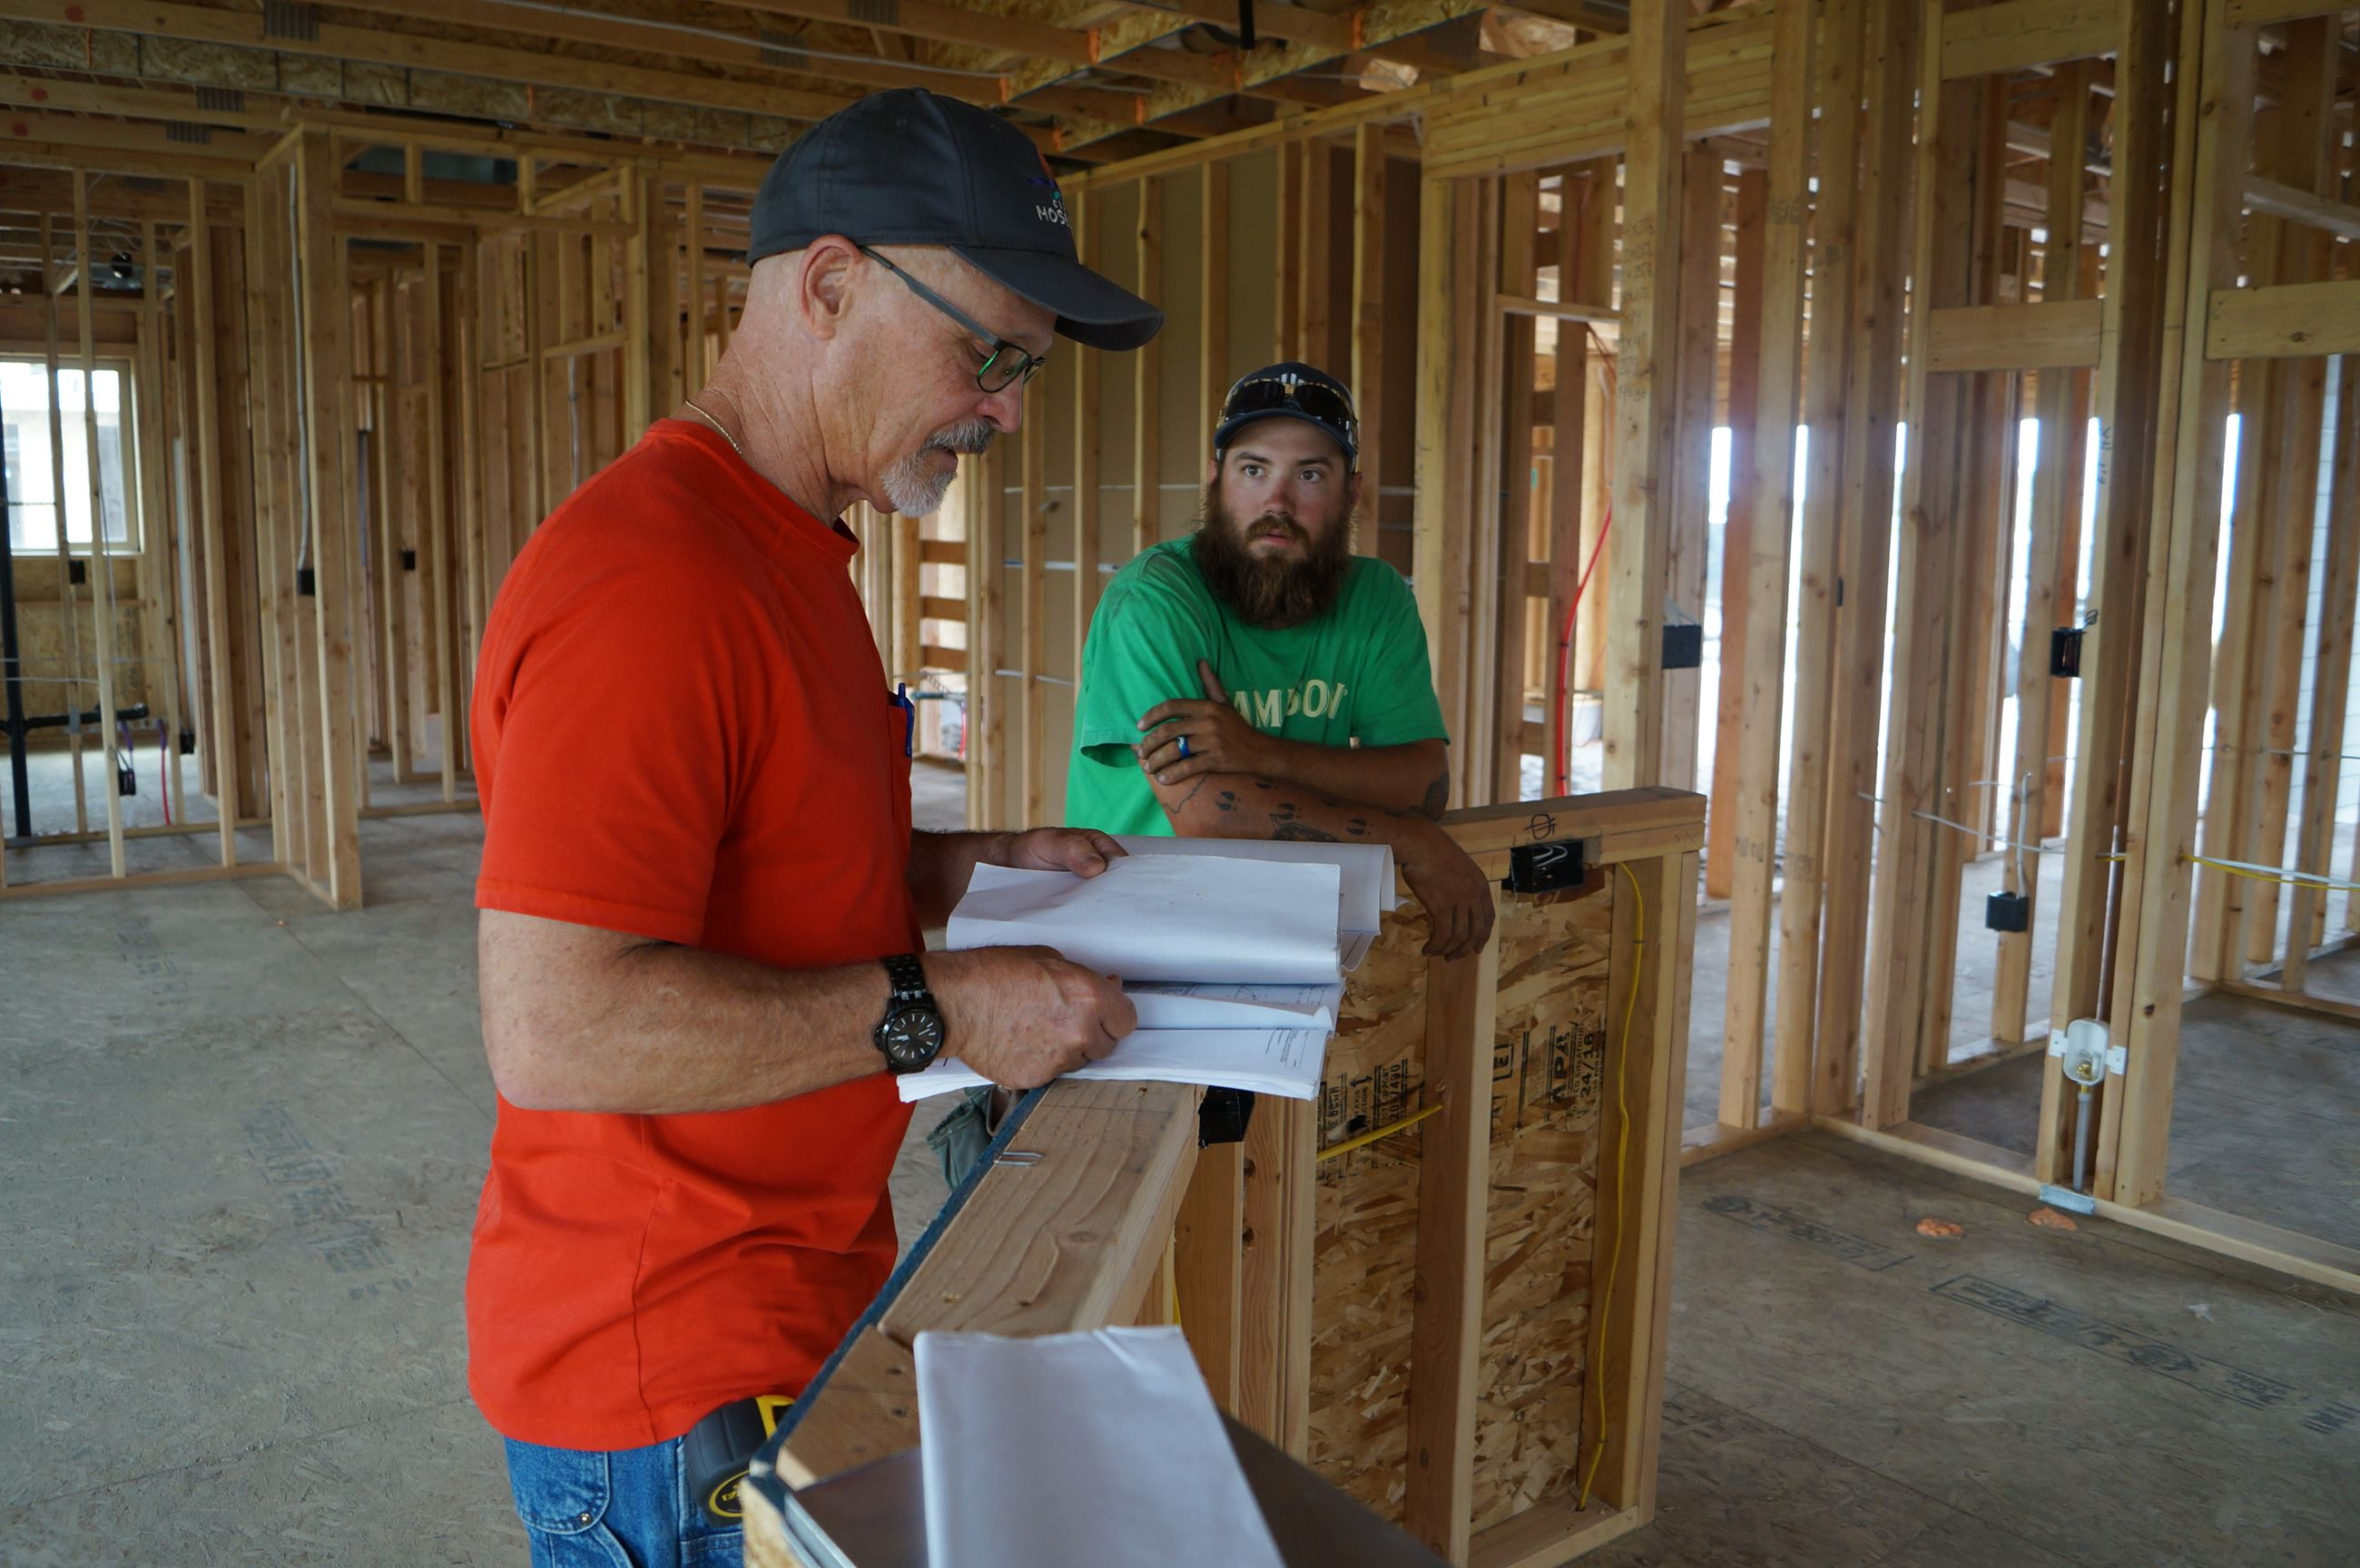 Building inspector Robert Trumbull meets with a construction worker at an Aho home on East Junco Str